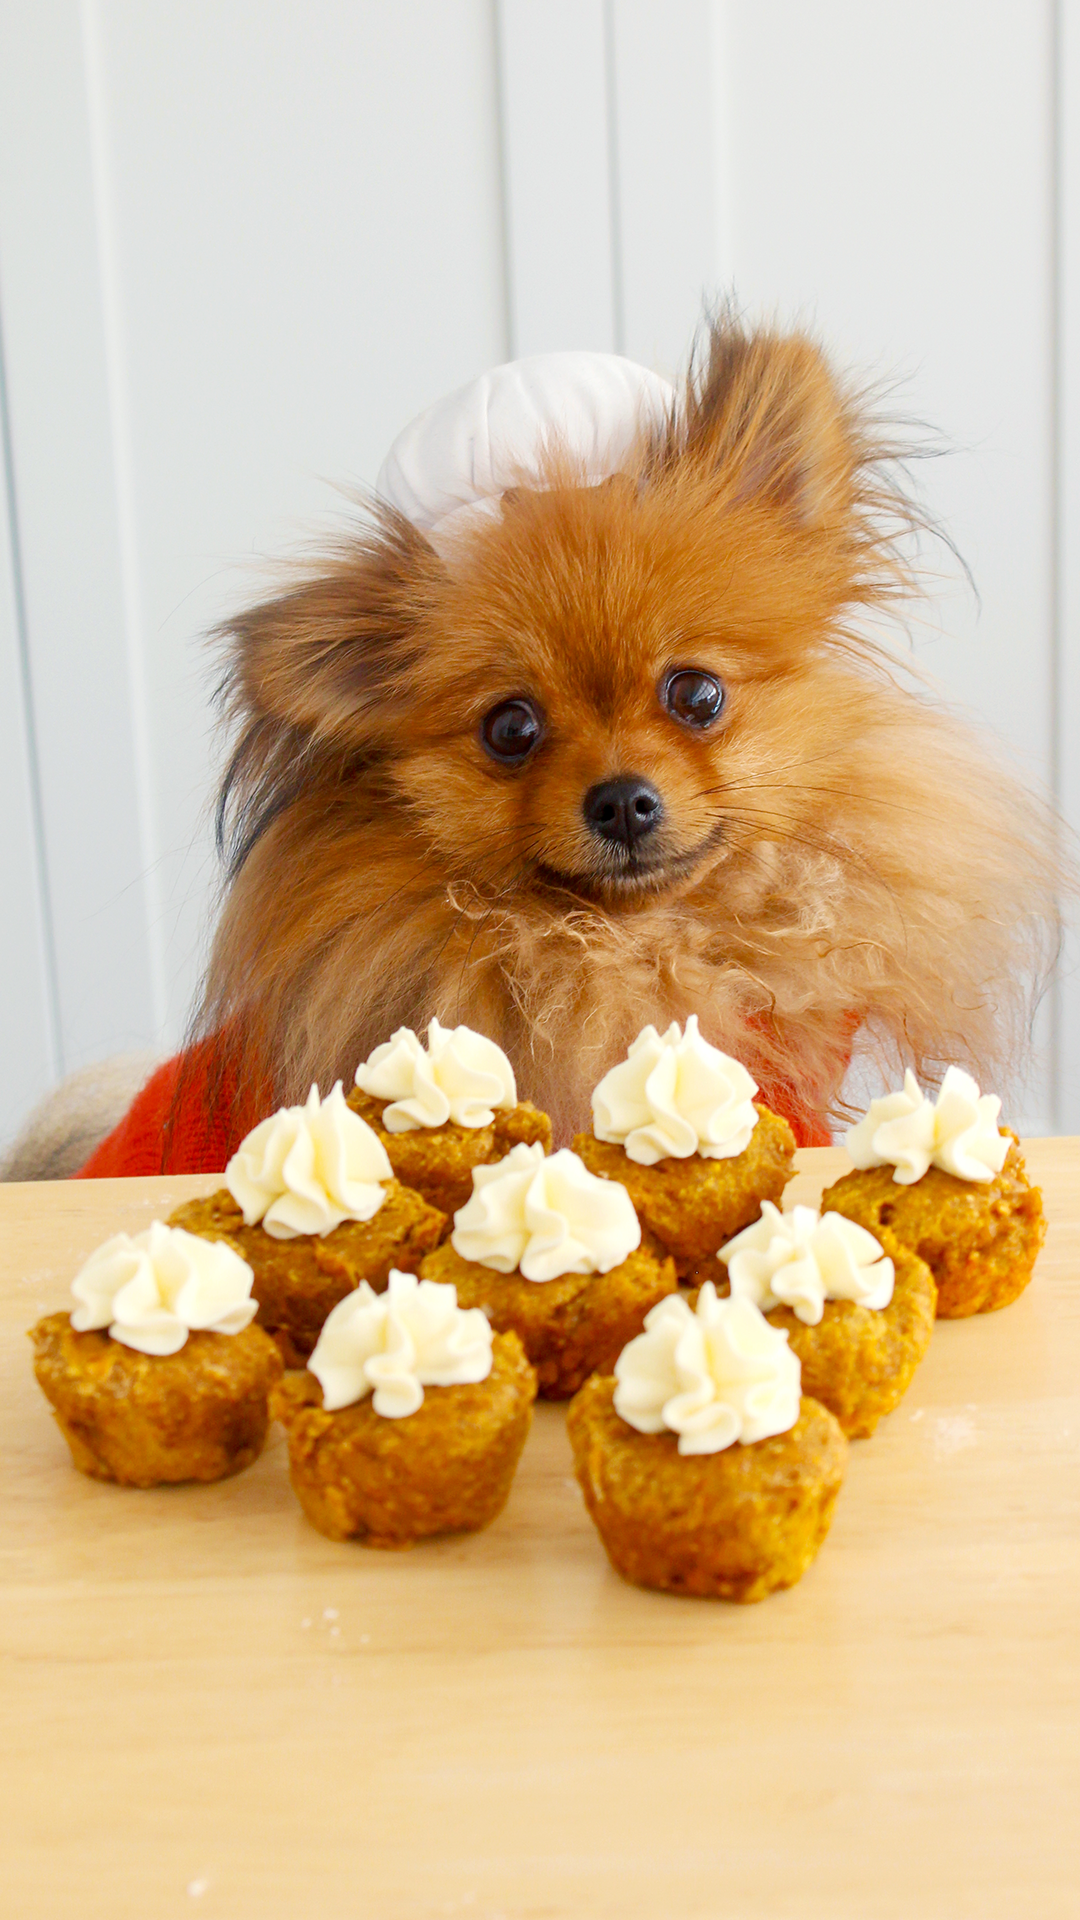 Pumpkin Spice Cupcakes For Dogs